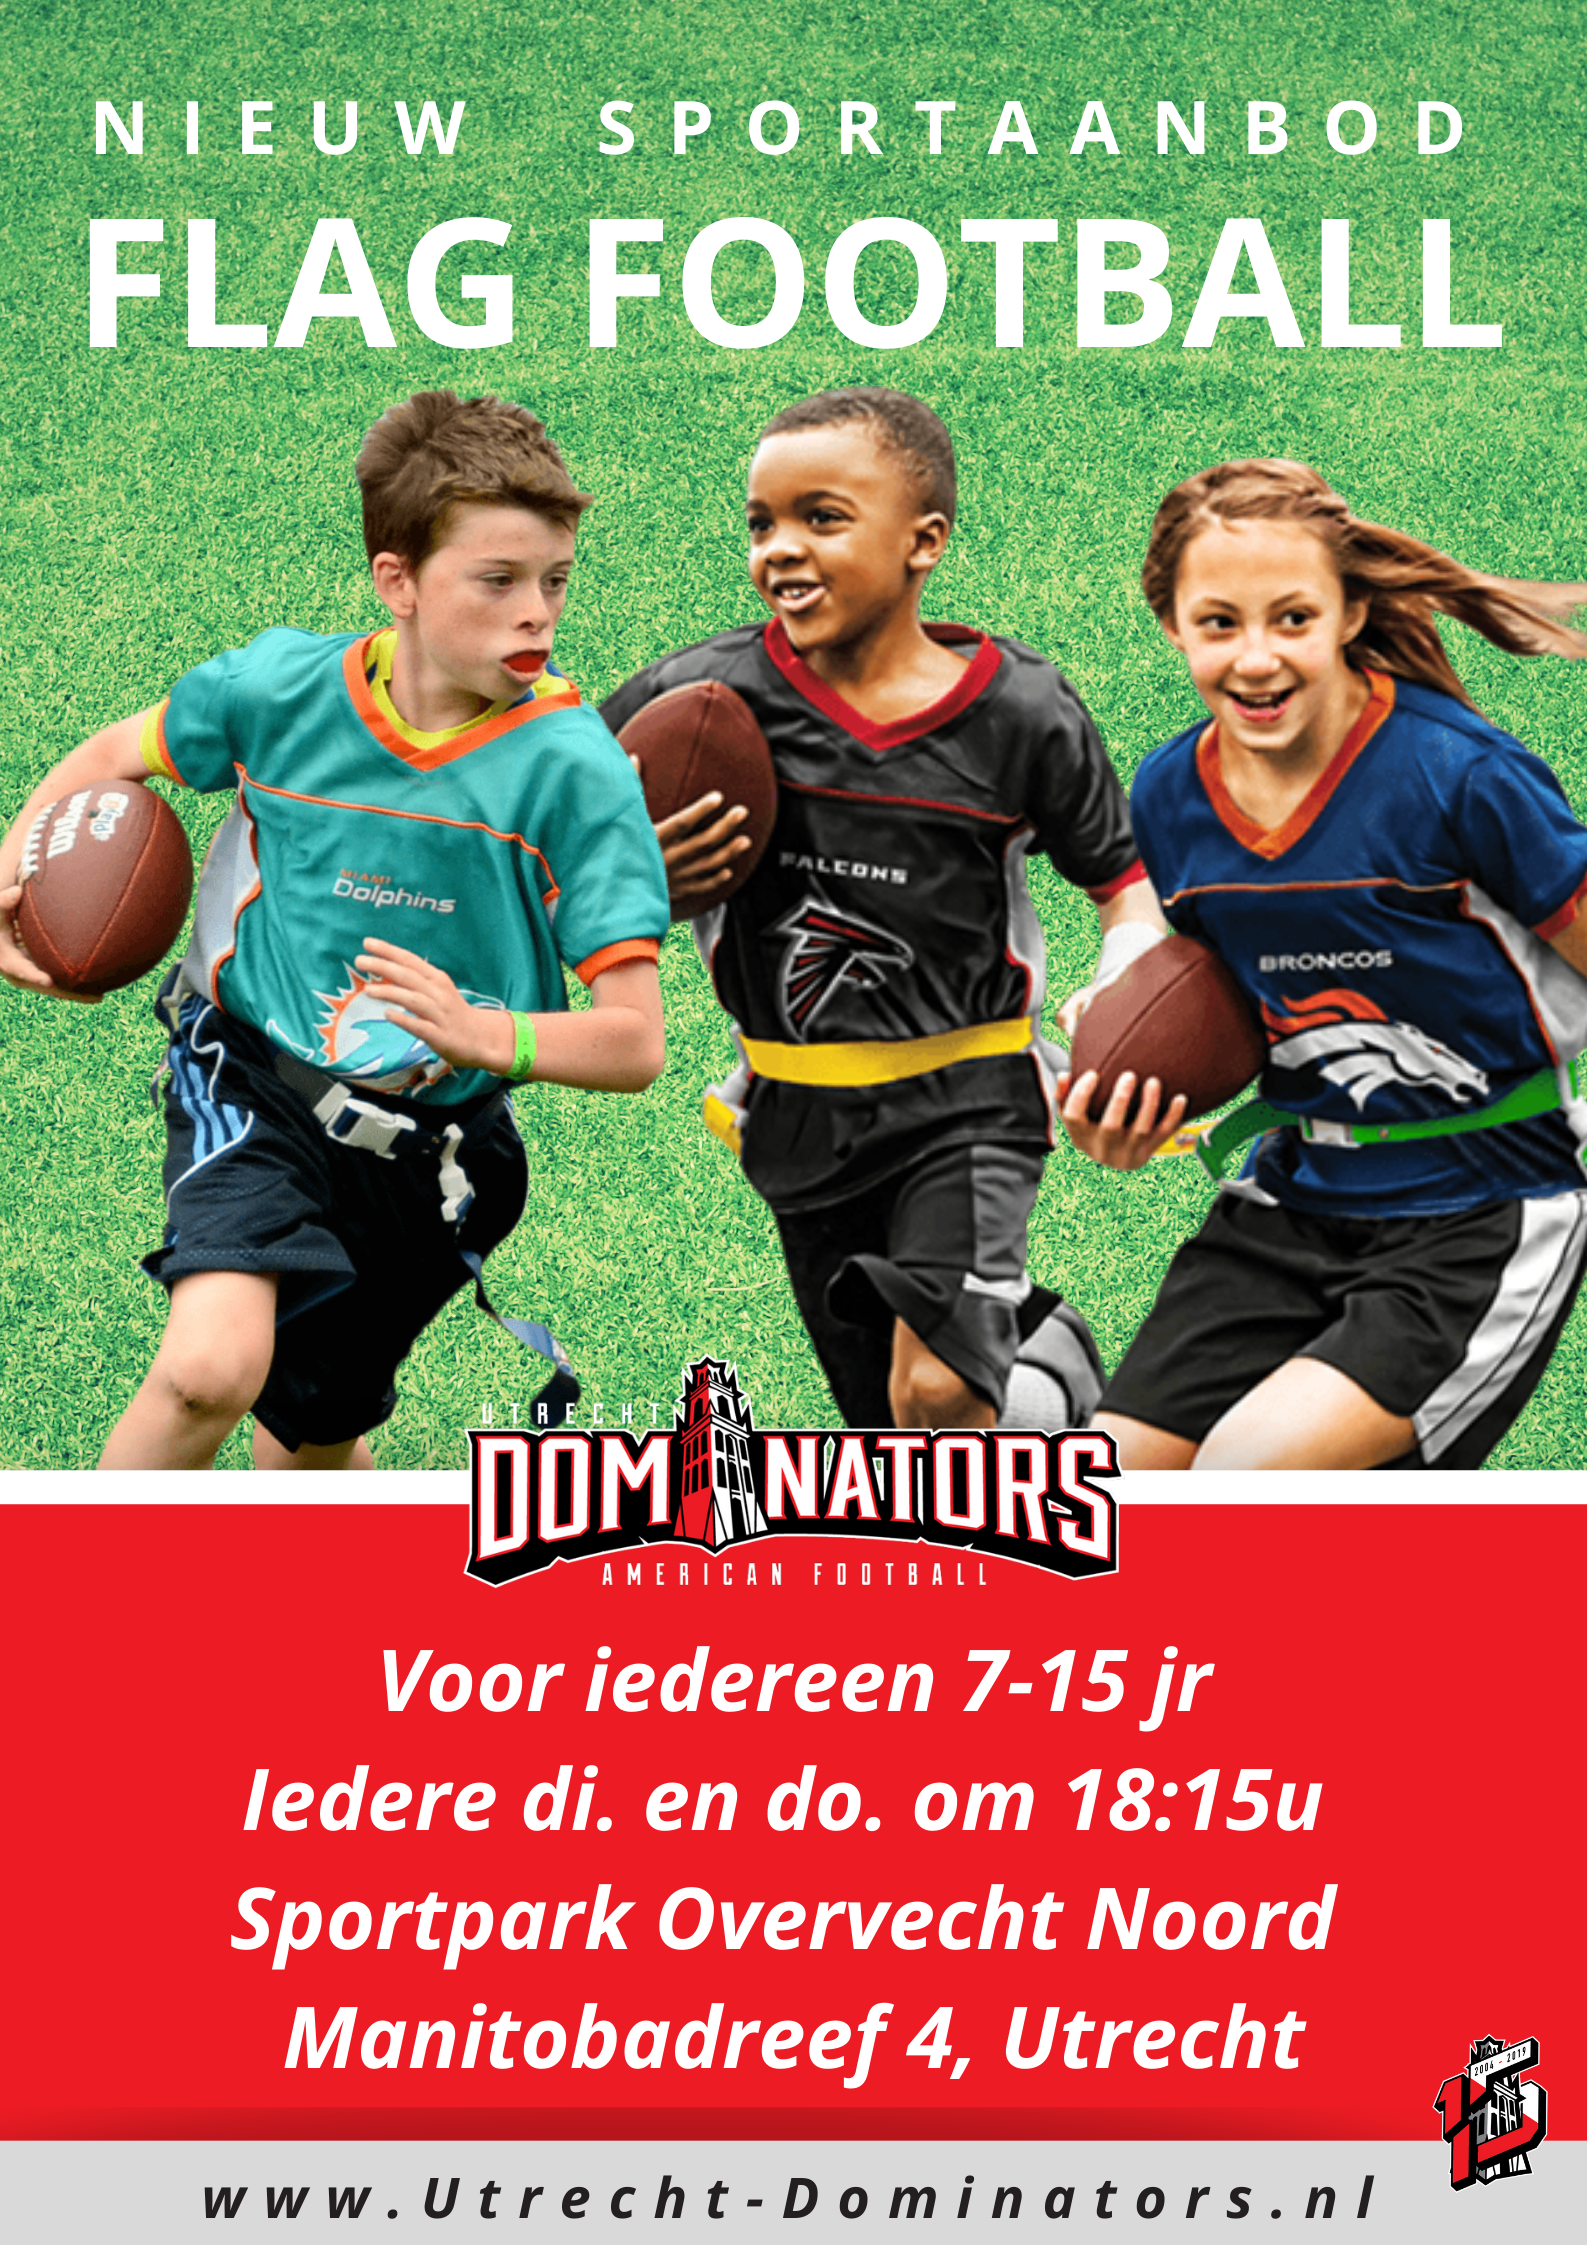 Kom en doe mee met flag football